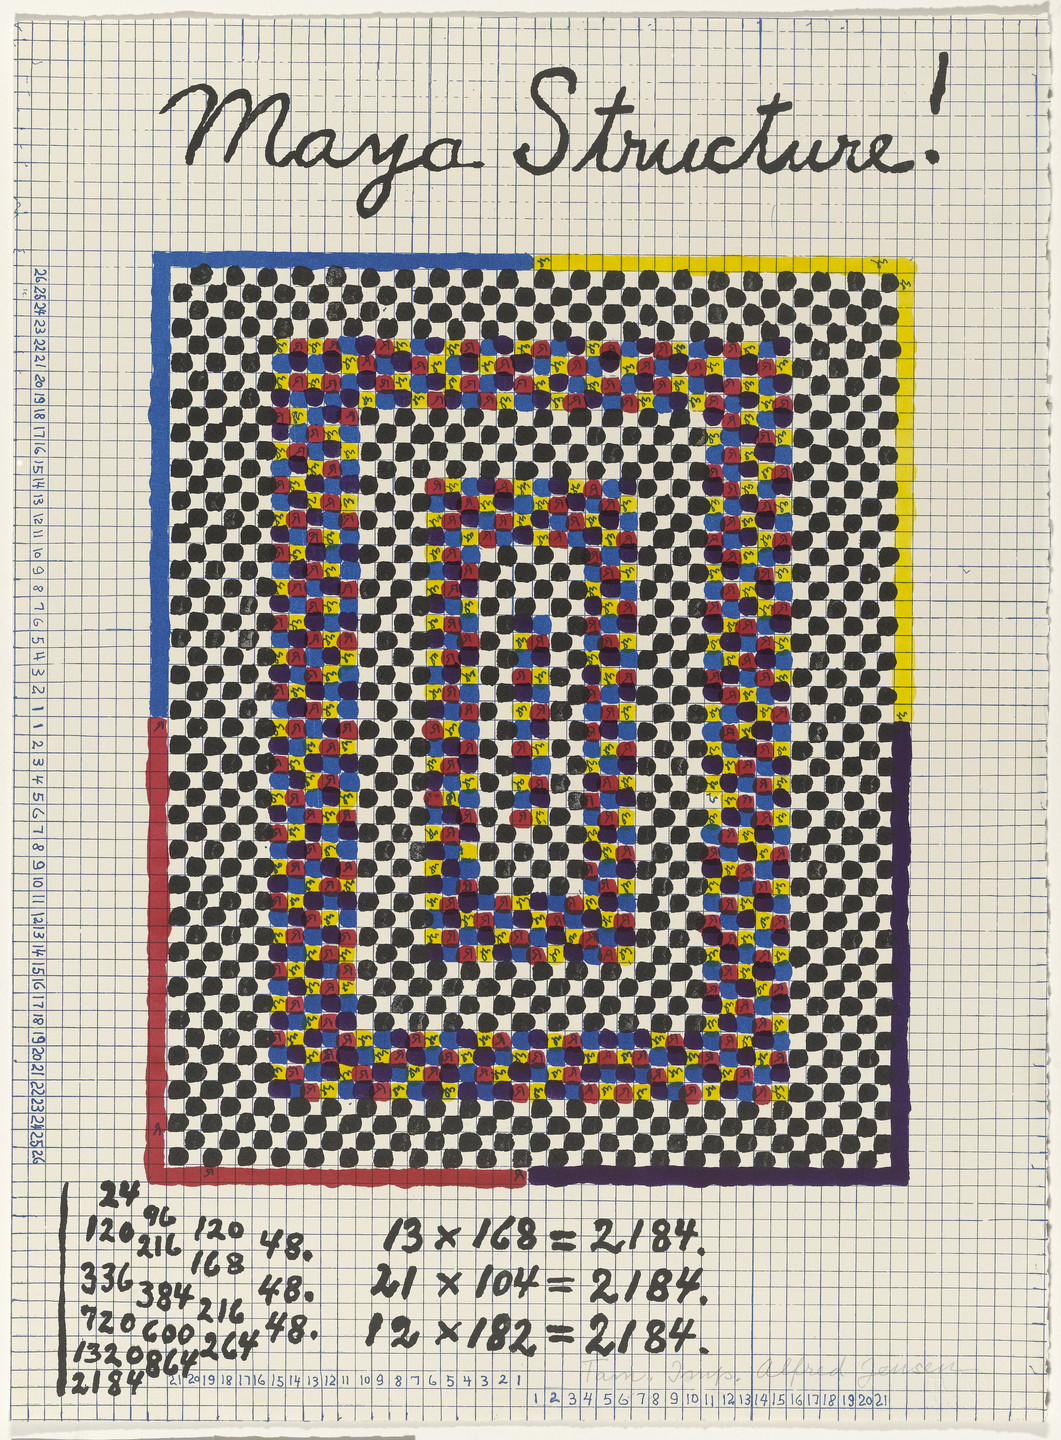 Alfred Jensen. In-text plate (folio 10) from A Pythagorean Notebook. 1965